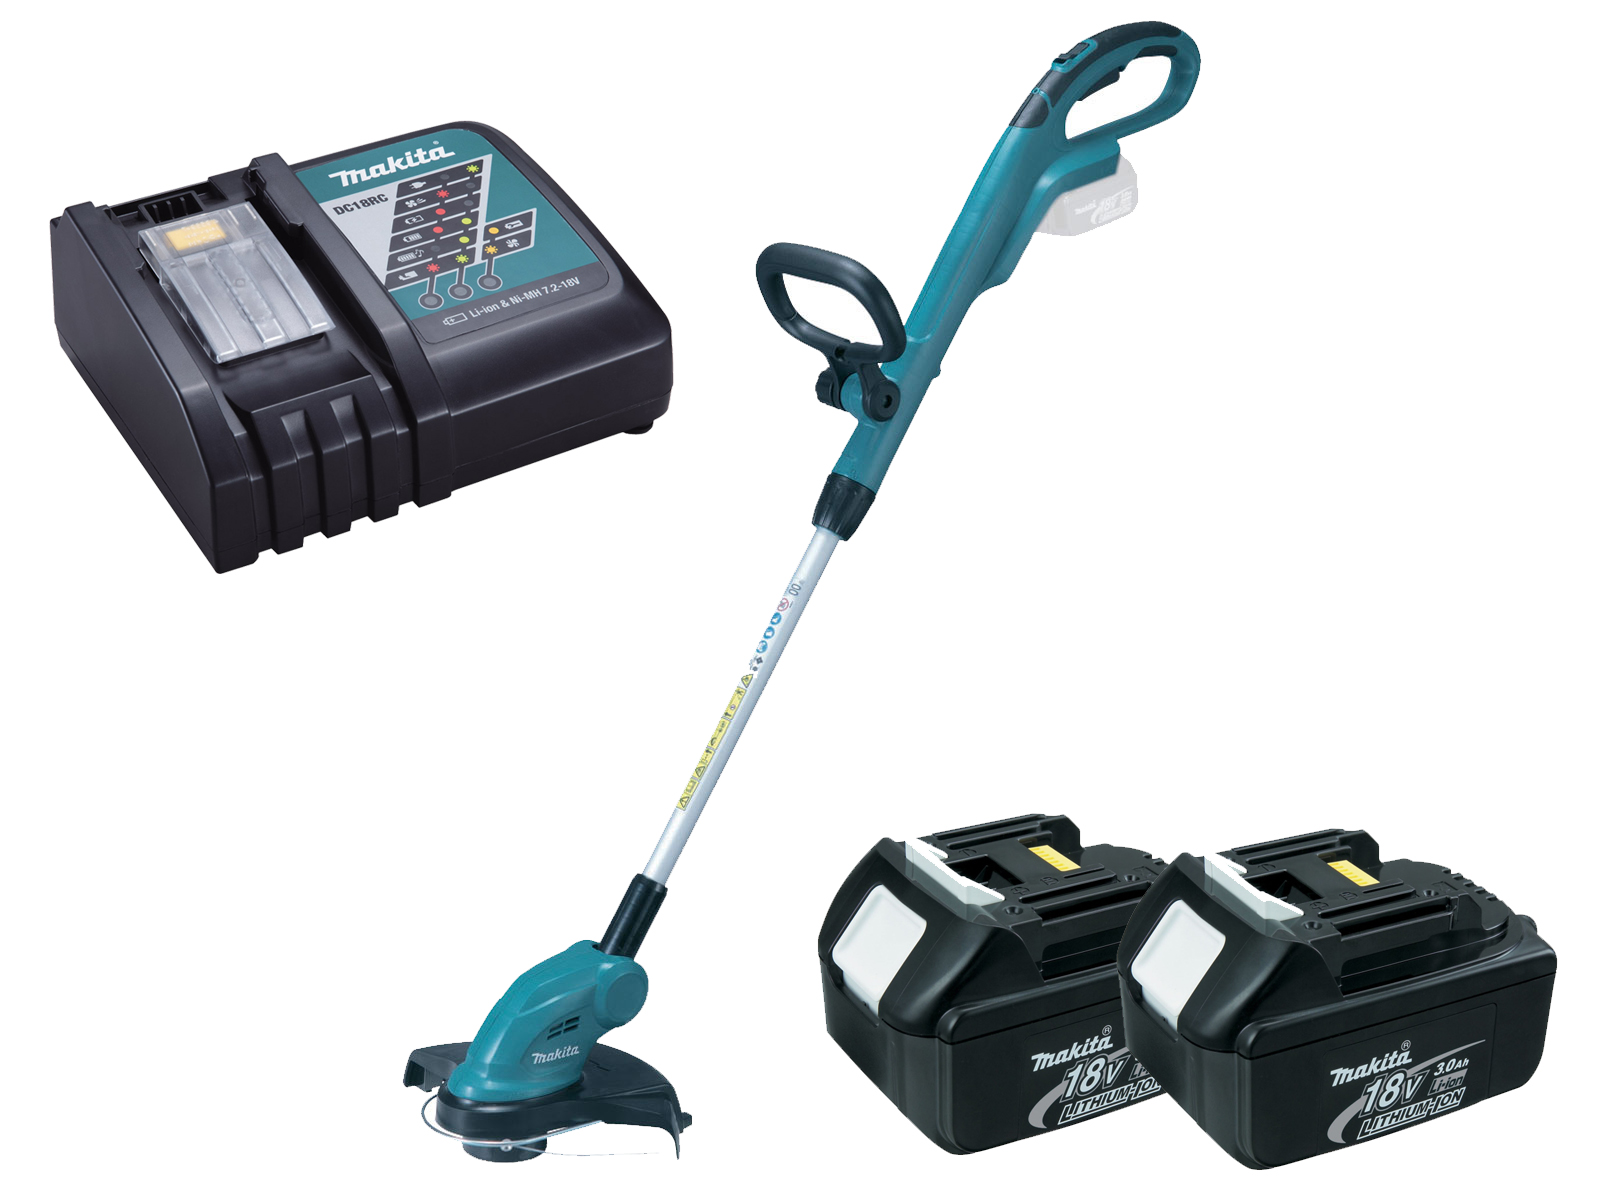 Makita 18V Brushed LXT Line Trimmer - DUR181Z - 3.0Ah Pack